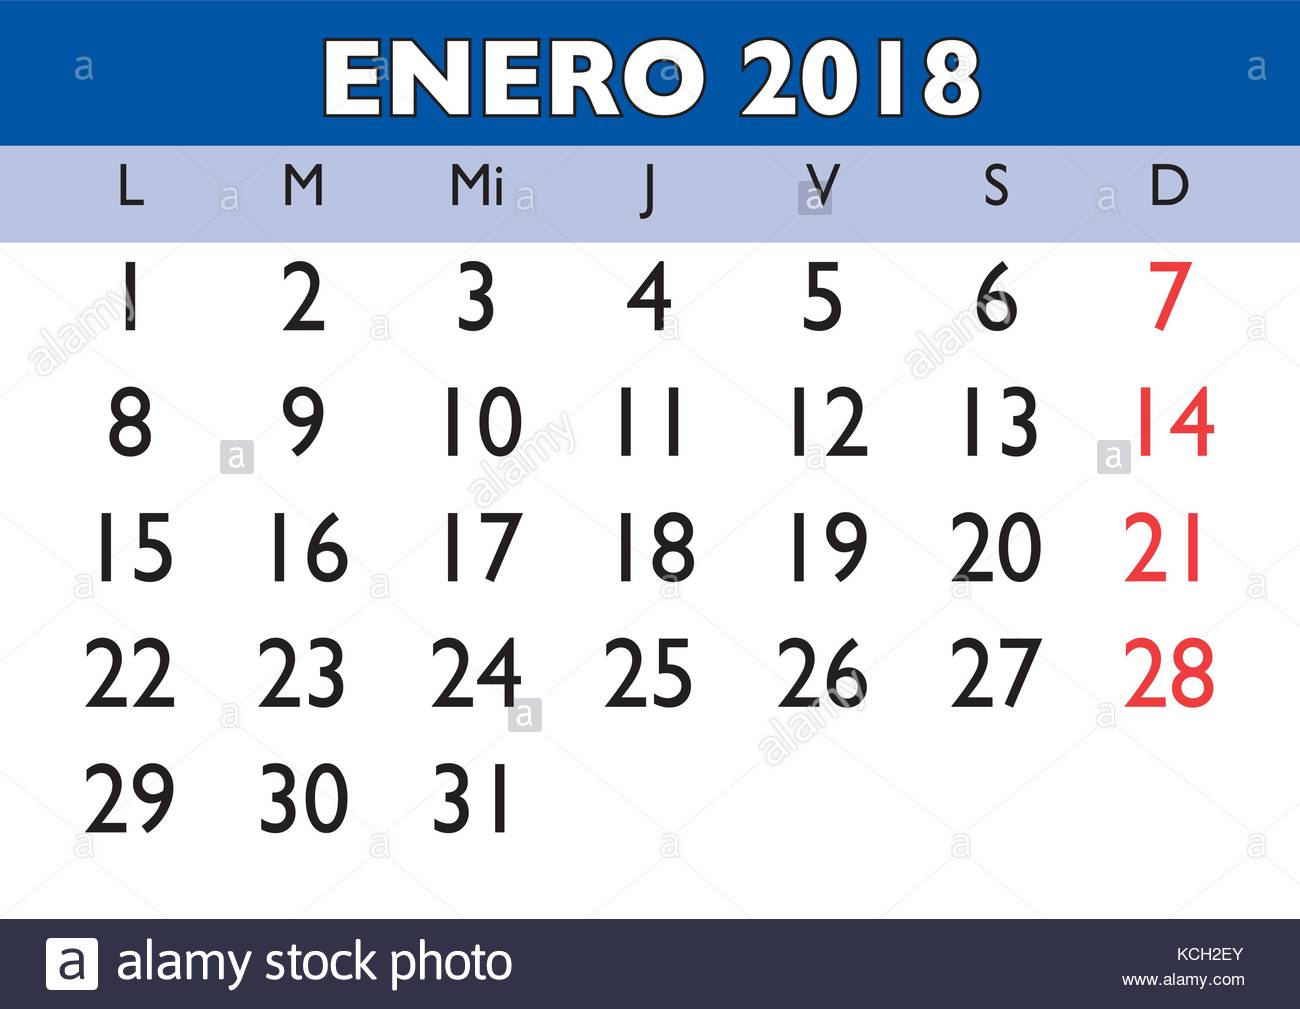 january month in a year 2018 wall calendar in spanish enero 2018 calendario 2018